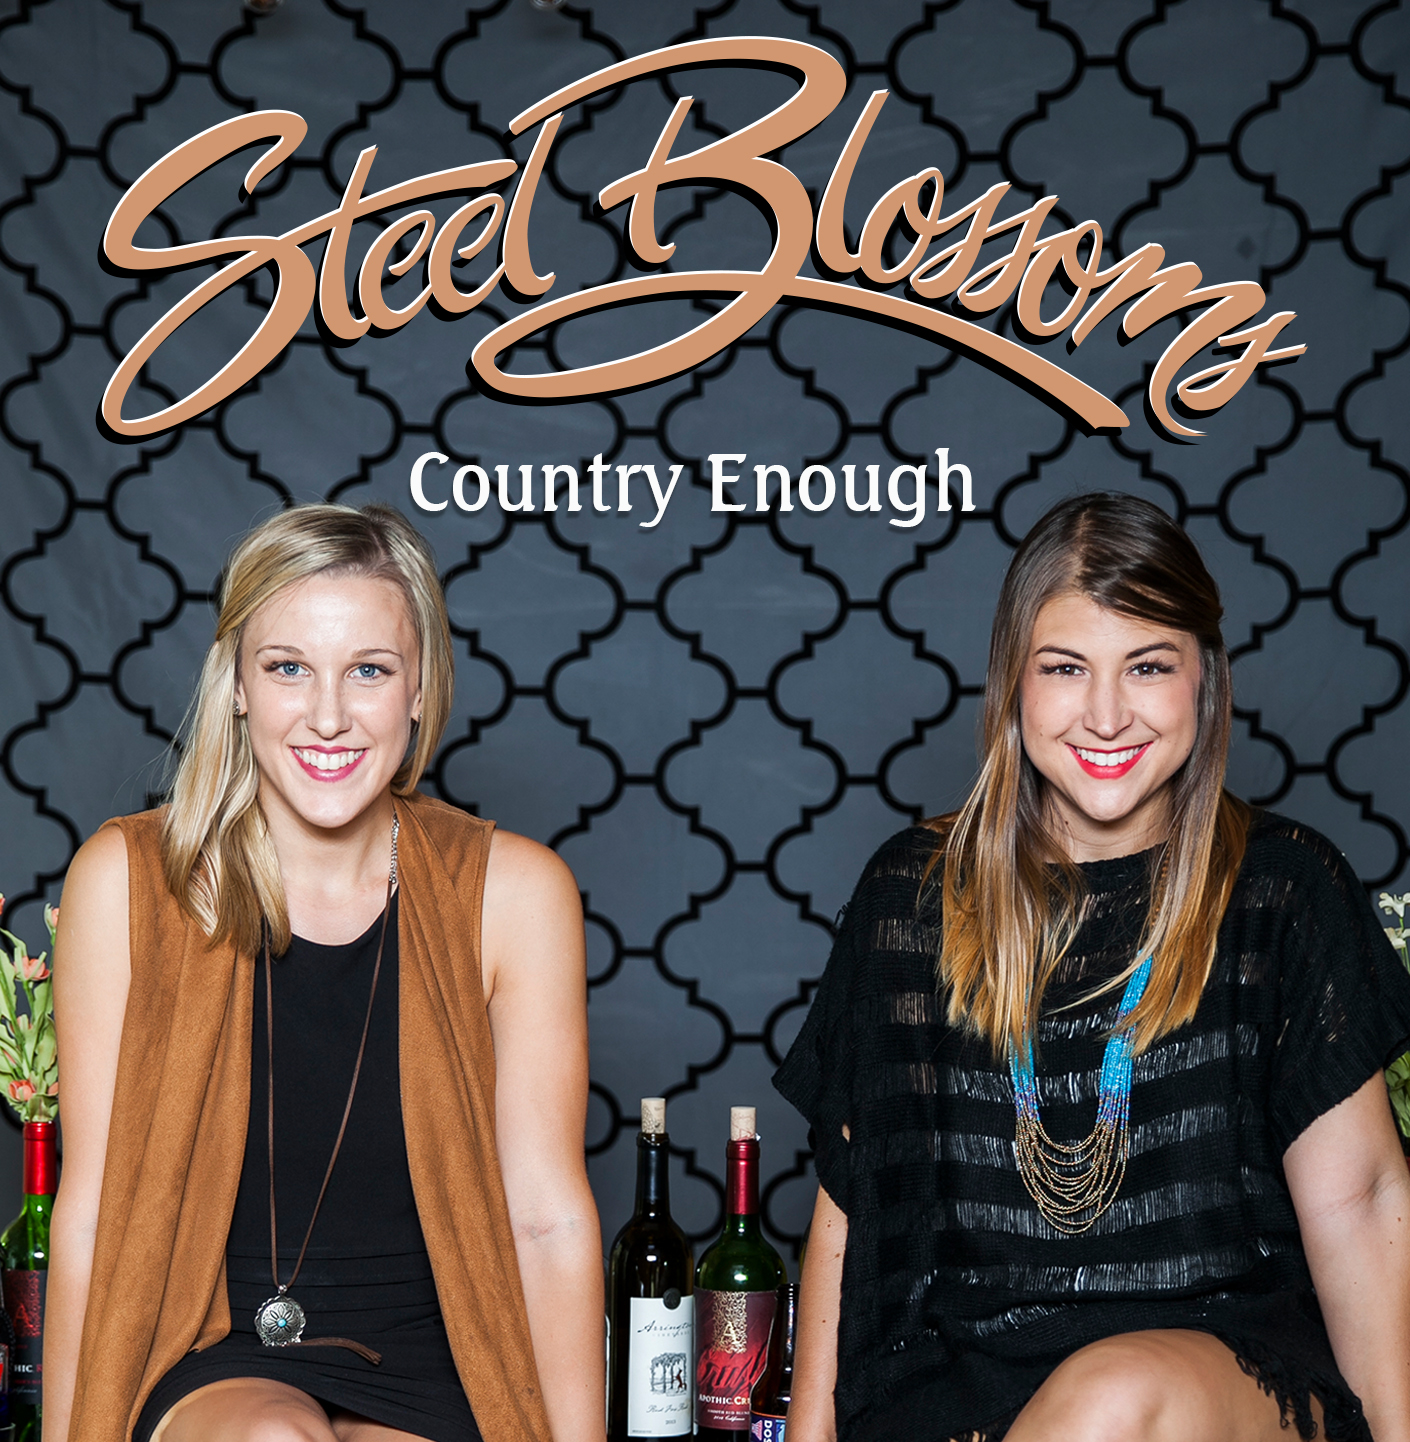 Country Enough is available now through the  Steel Blossoms web store .